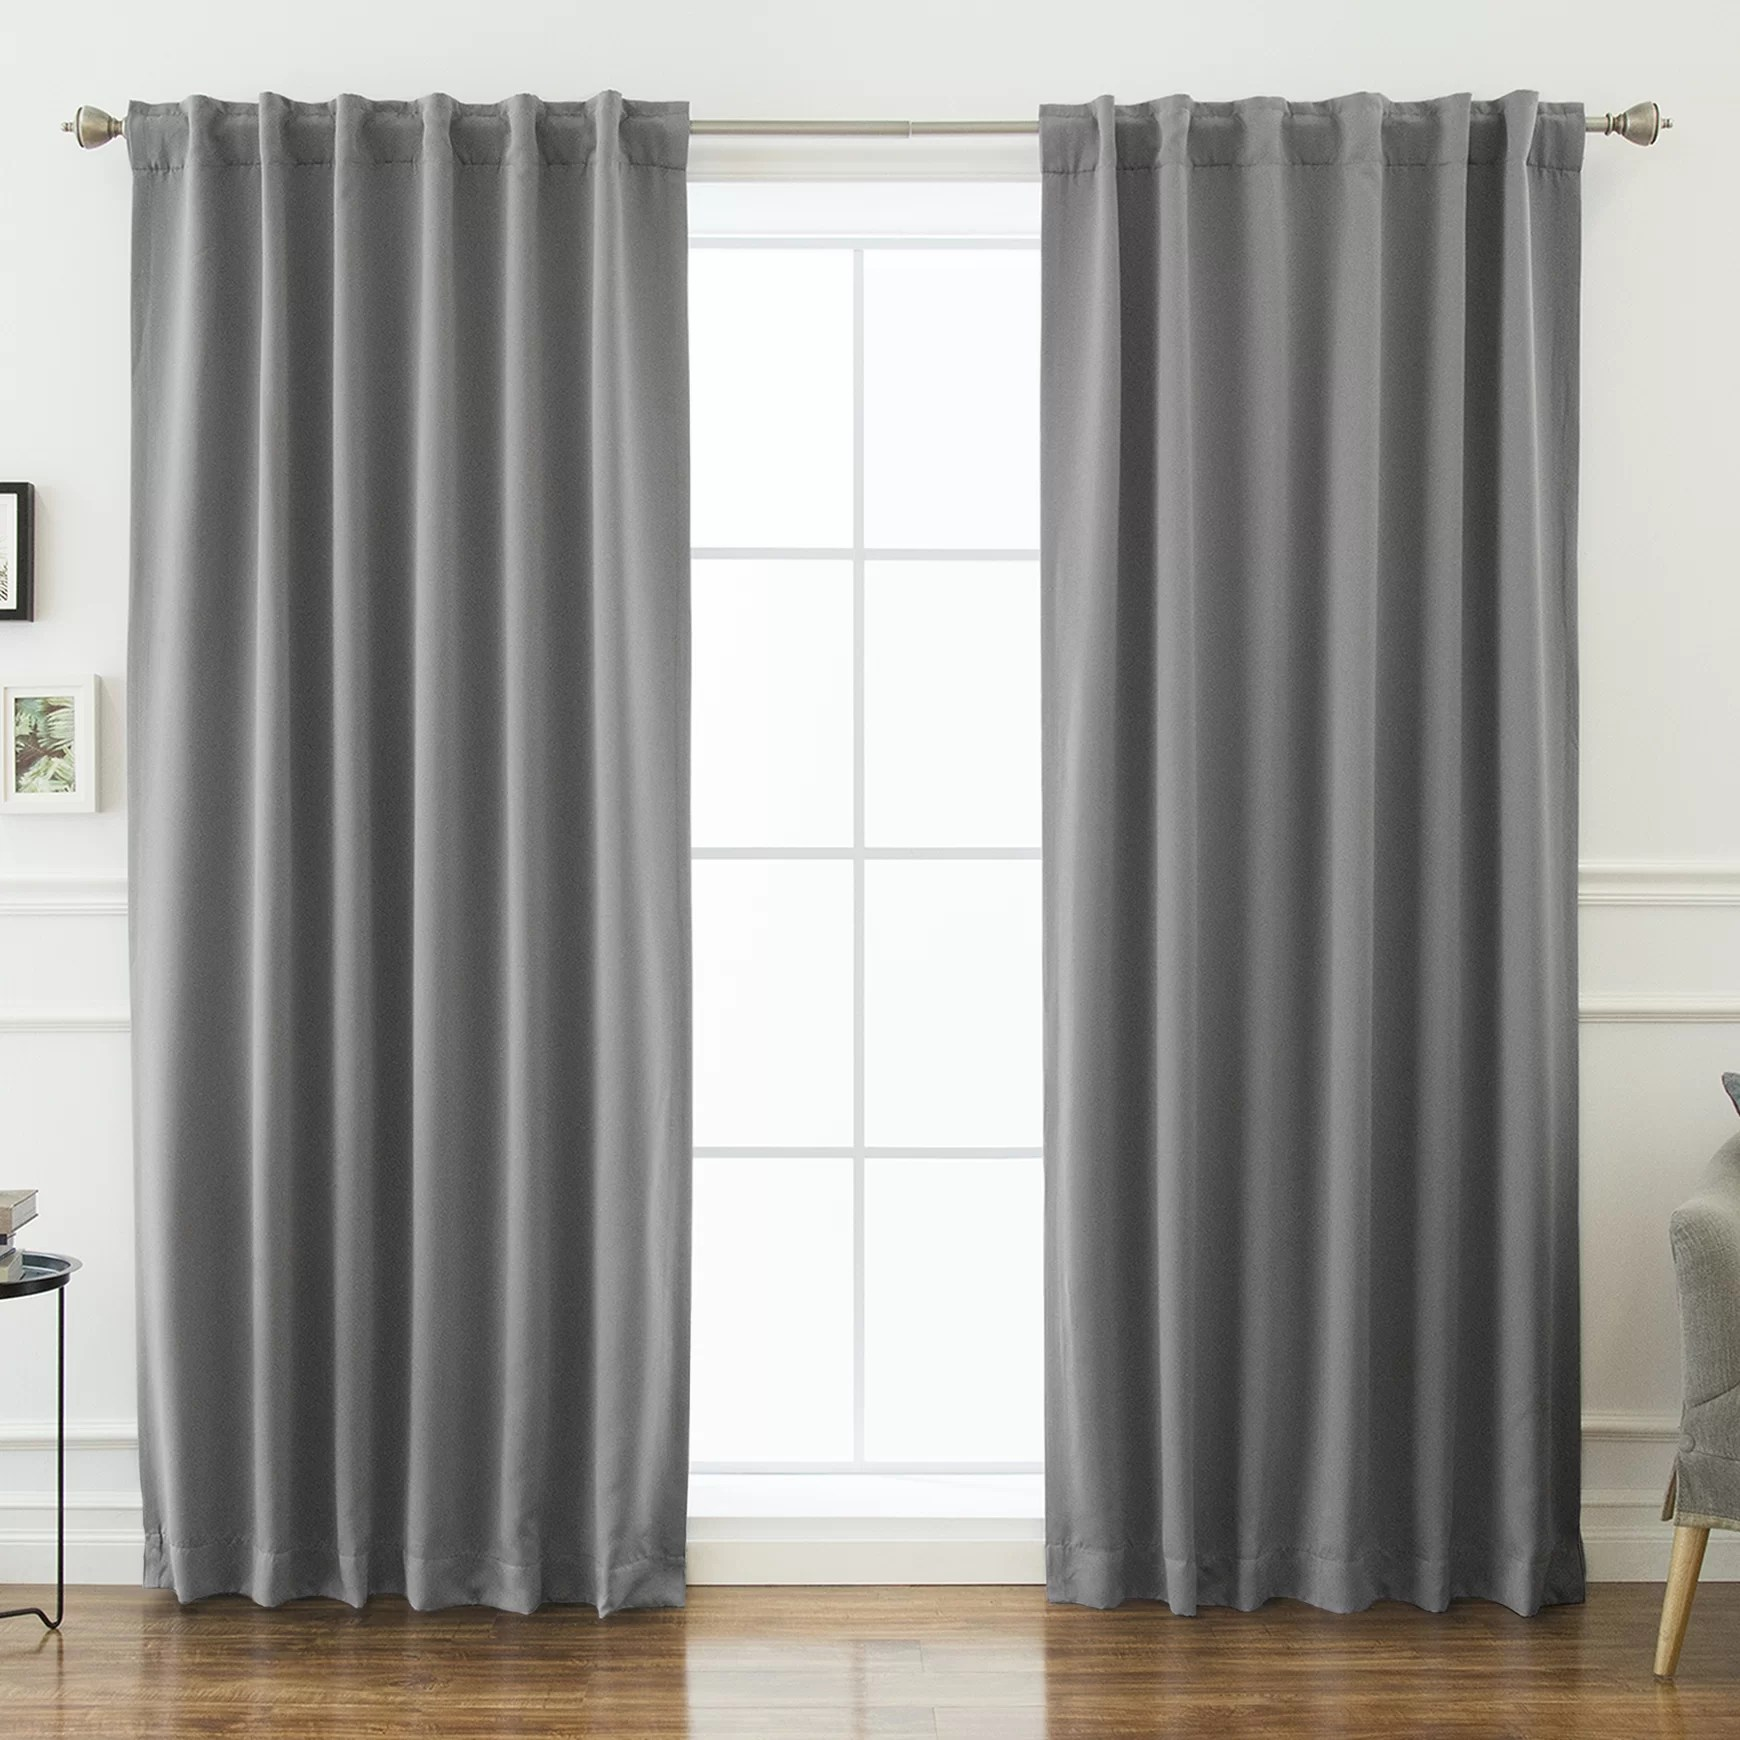 Grey Thermal Curtains Sweetwater Blackout Solid Thermal Curtain Panels